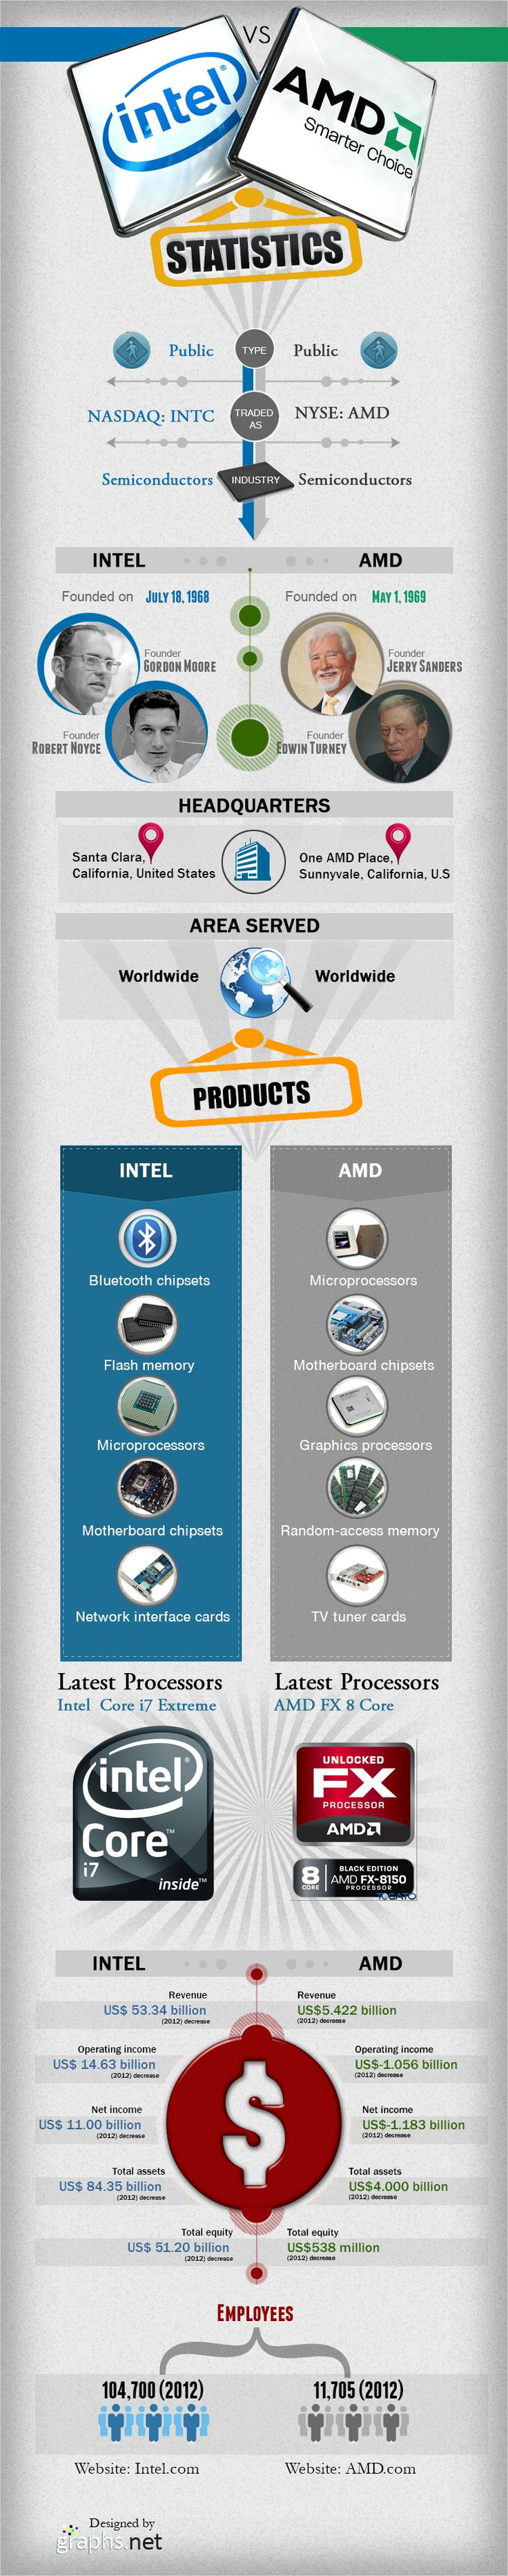 Intel vs. AMD #infografia #infographic #tech... 8a6c732218d00f1669f31b8c0dd6ae9a  computer architecture future computers